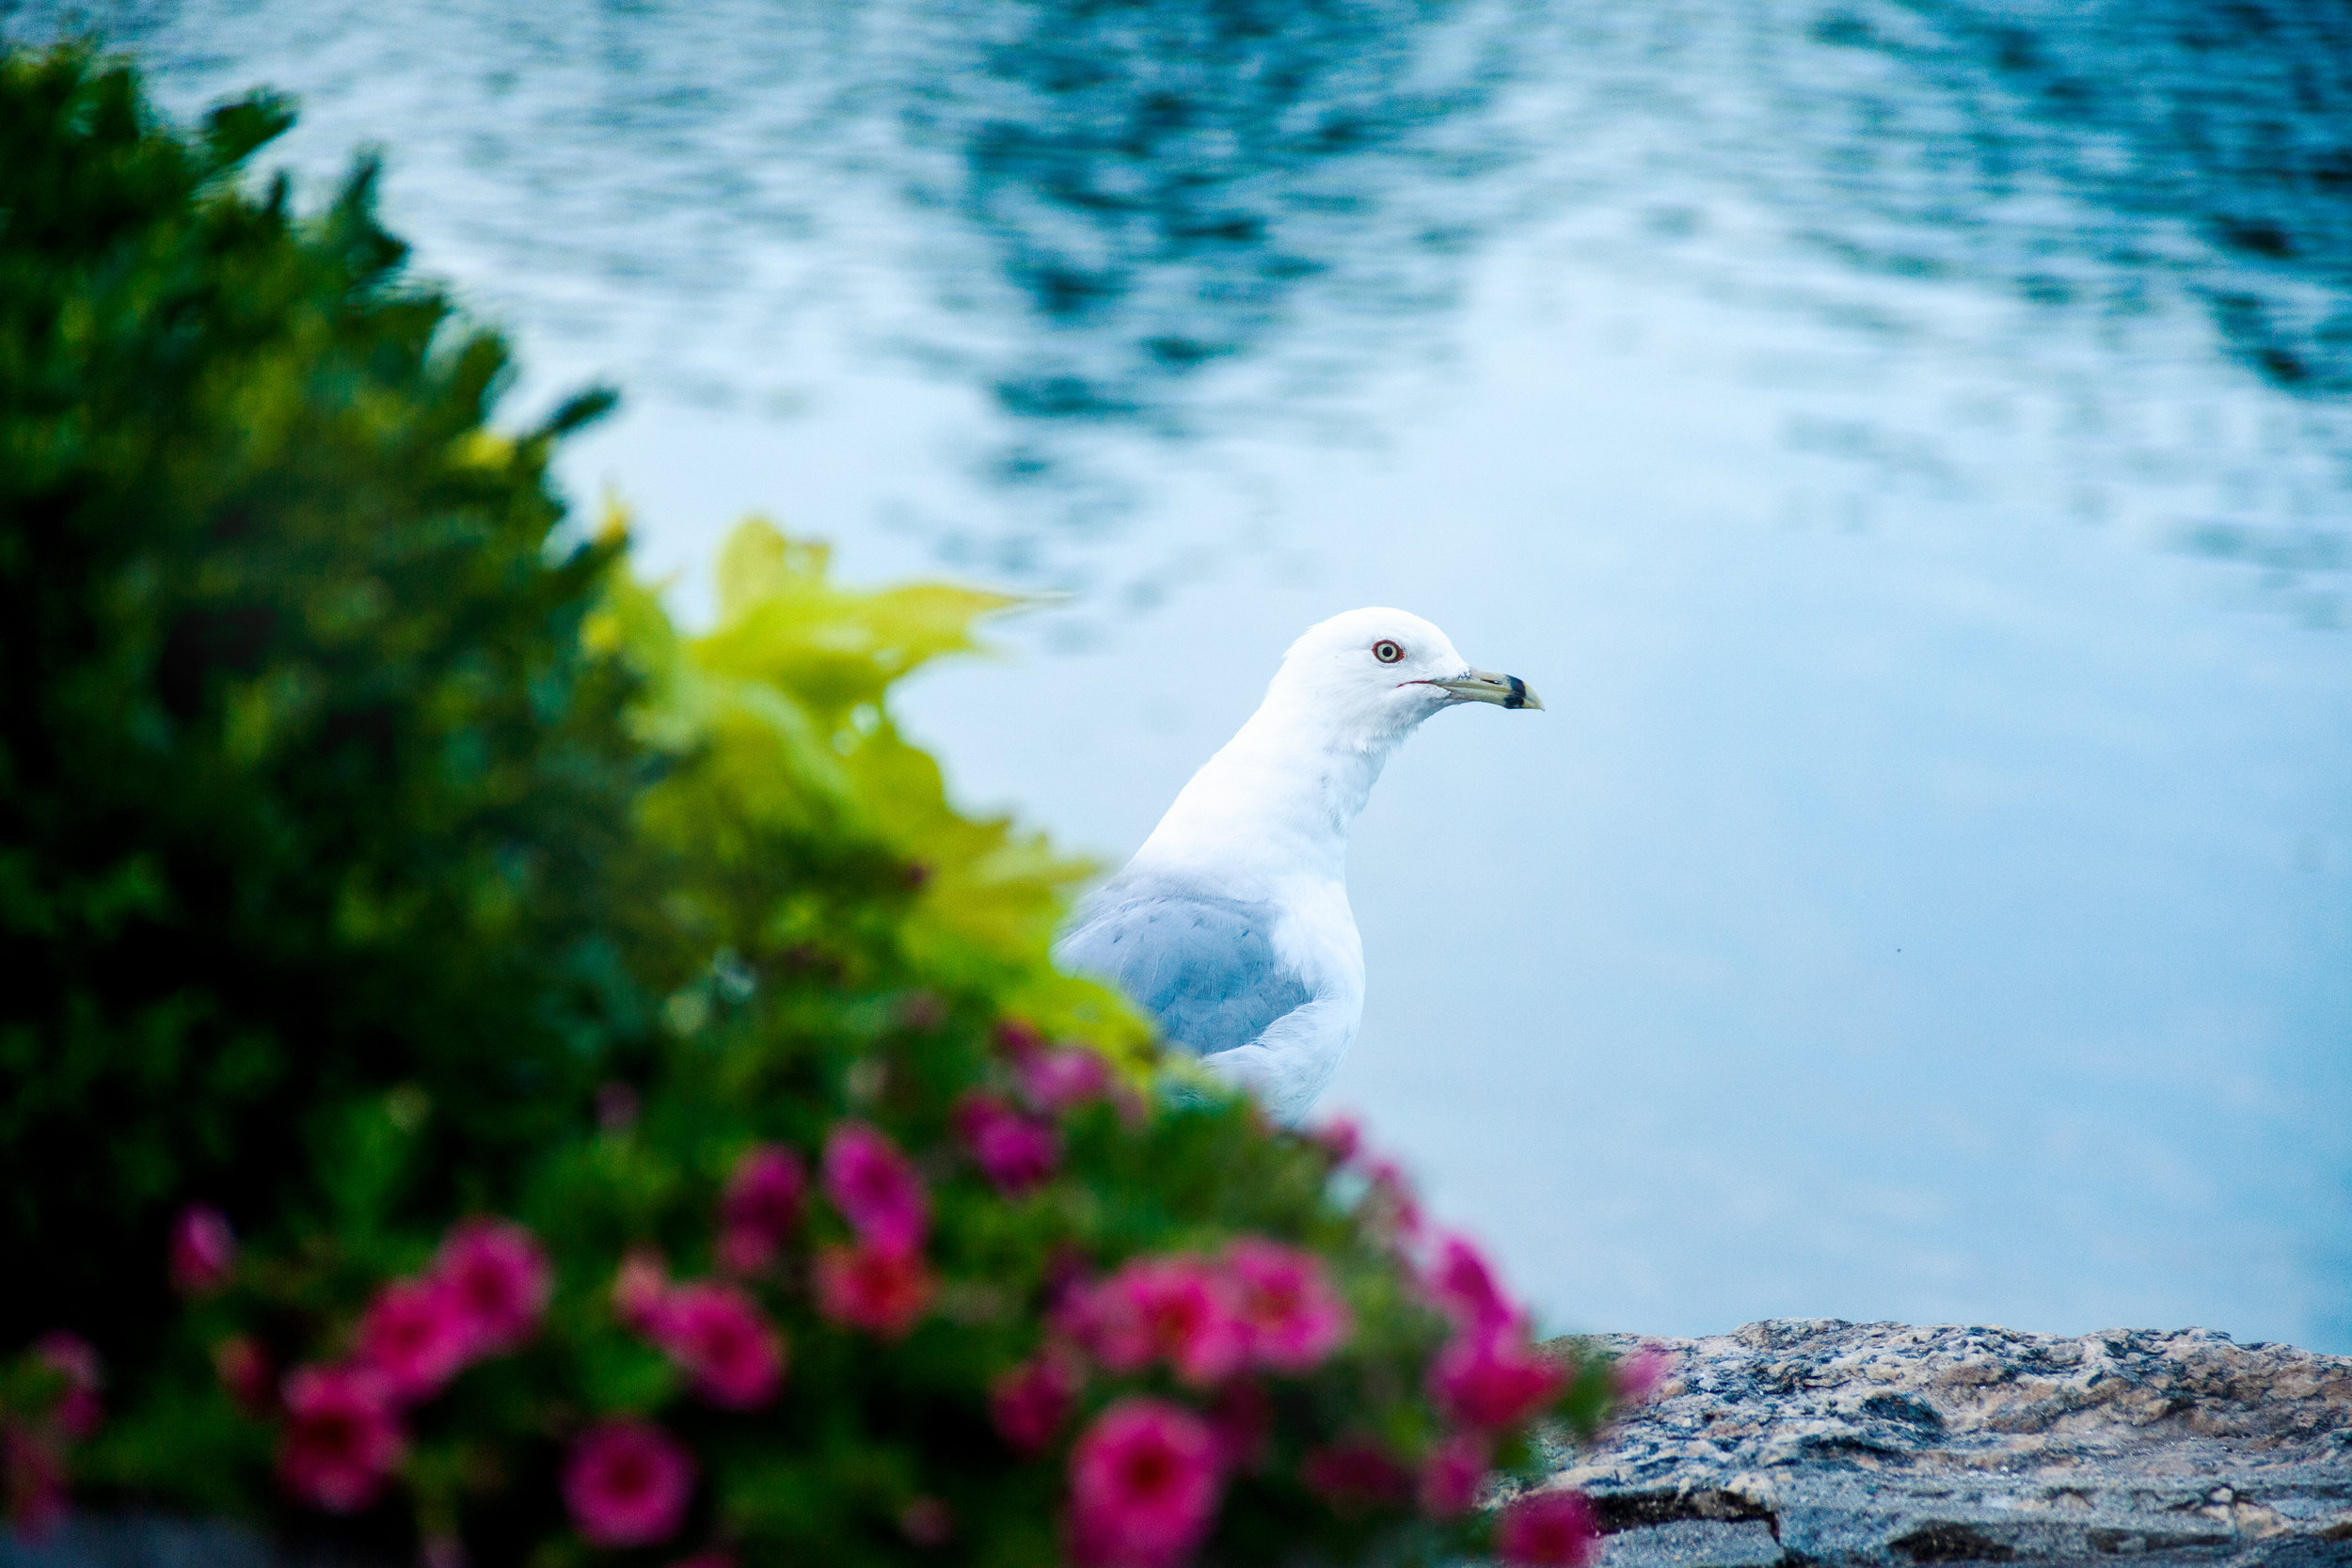 The seagull behind the flowers